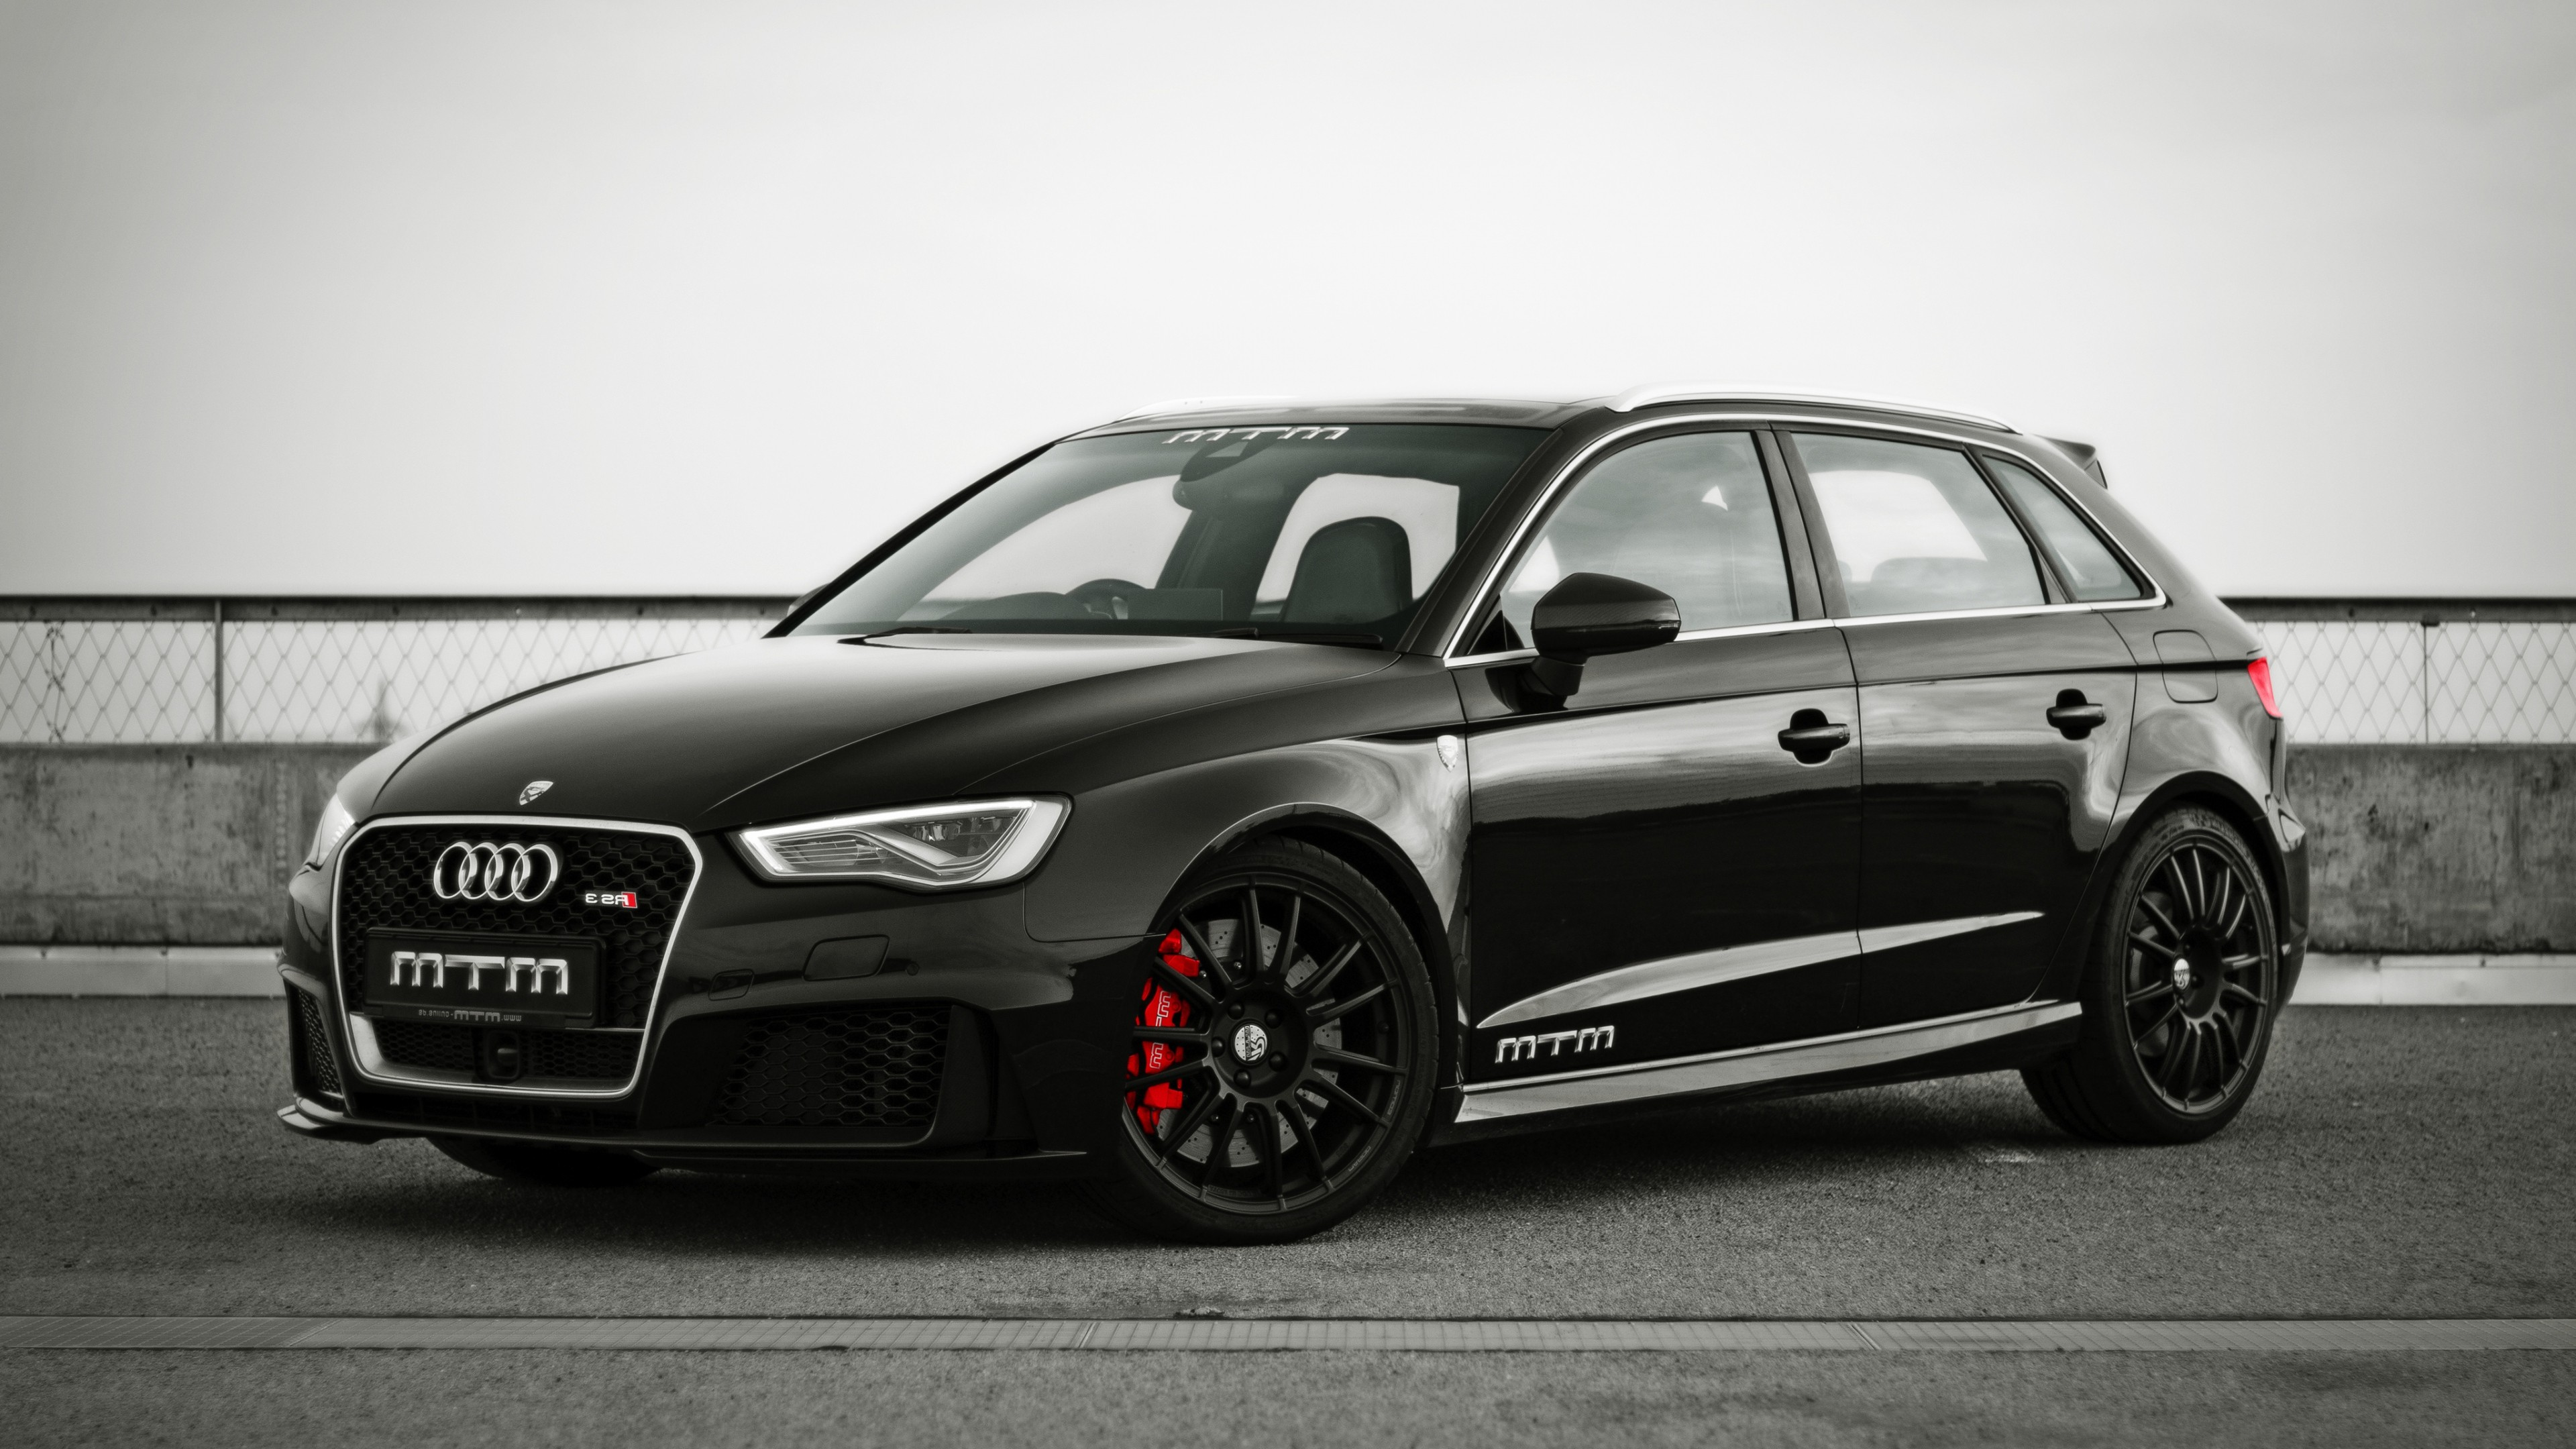 Audi rs3 review prices, specs and 060 time evo → Audi tt review ...